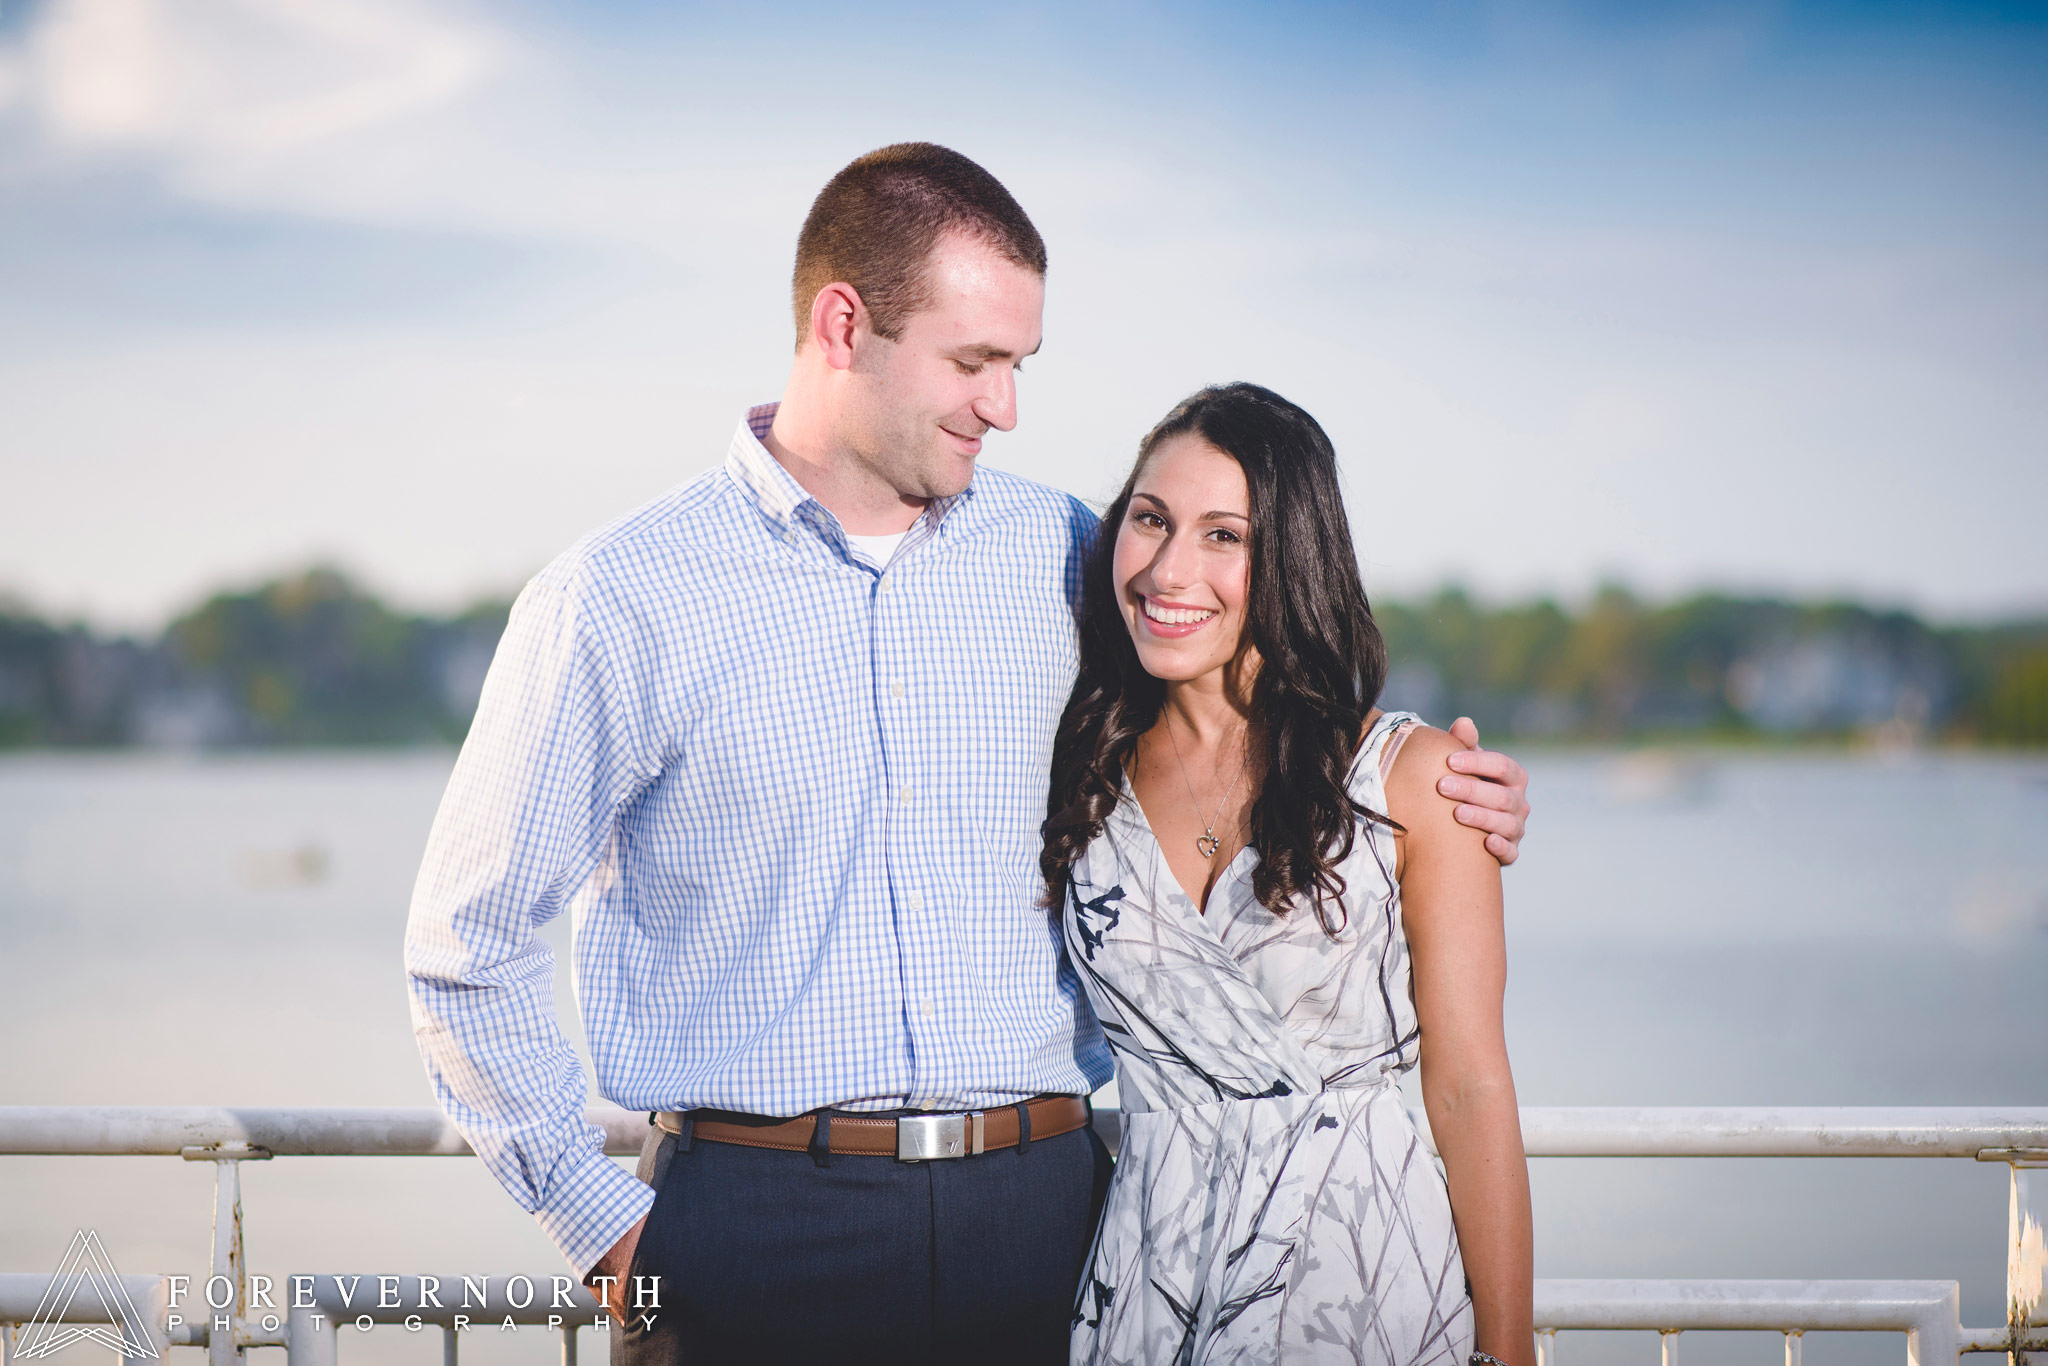 Rob-Joni-Riverside-Gardens-Park-Engagement-Photos-03.JPG